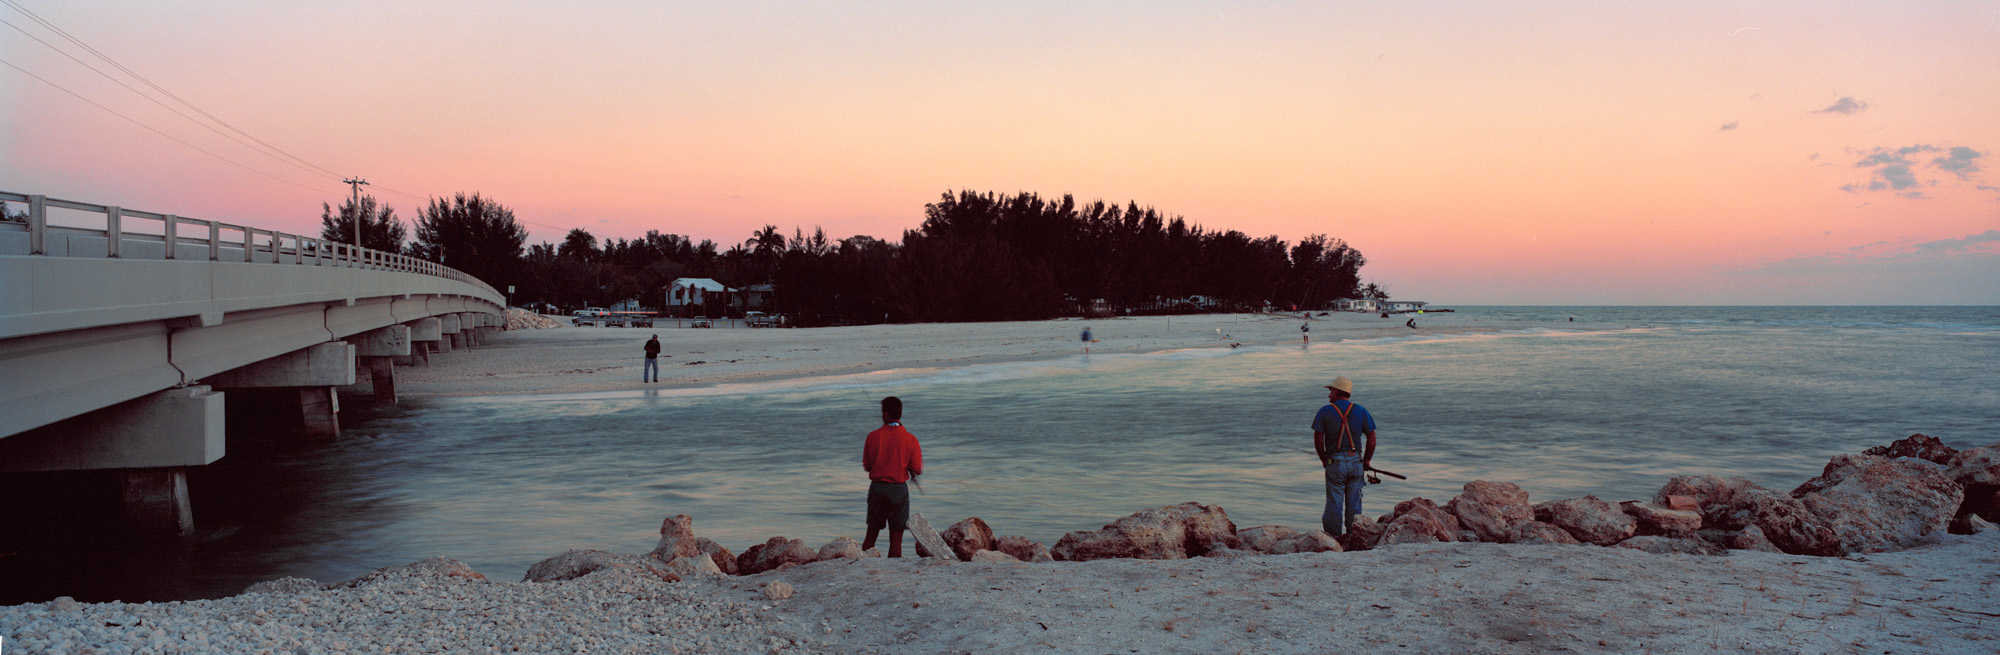 Magic Hour, Blind Pass, Sanibel-Captiva, Florida, 1998